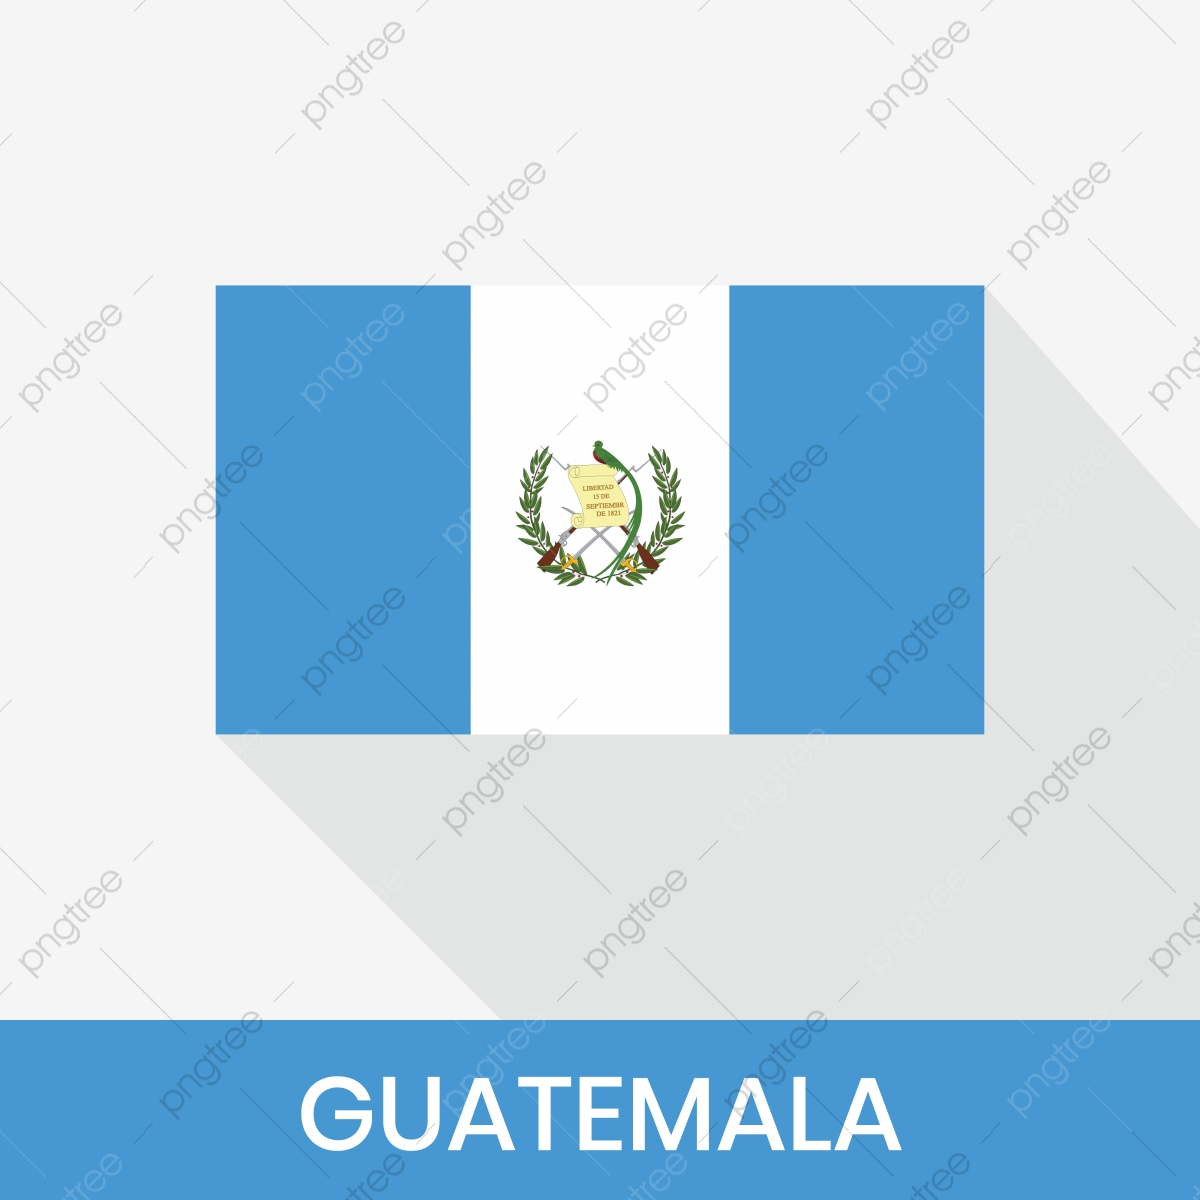 Guatemala Png Images Vector And Psd Files Free Download On Pngtree